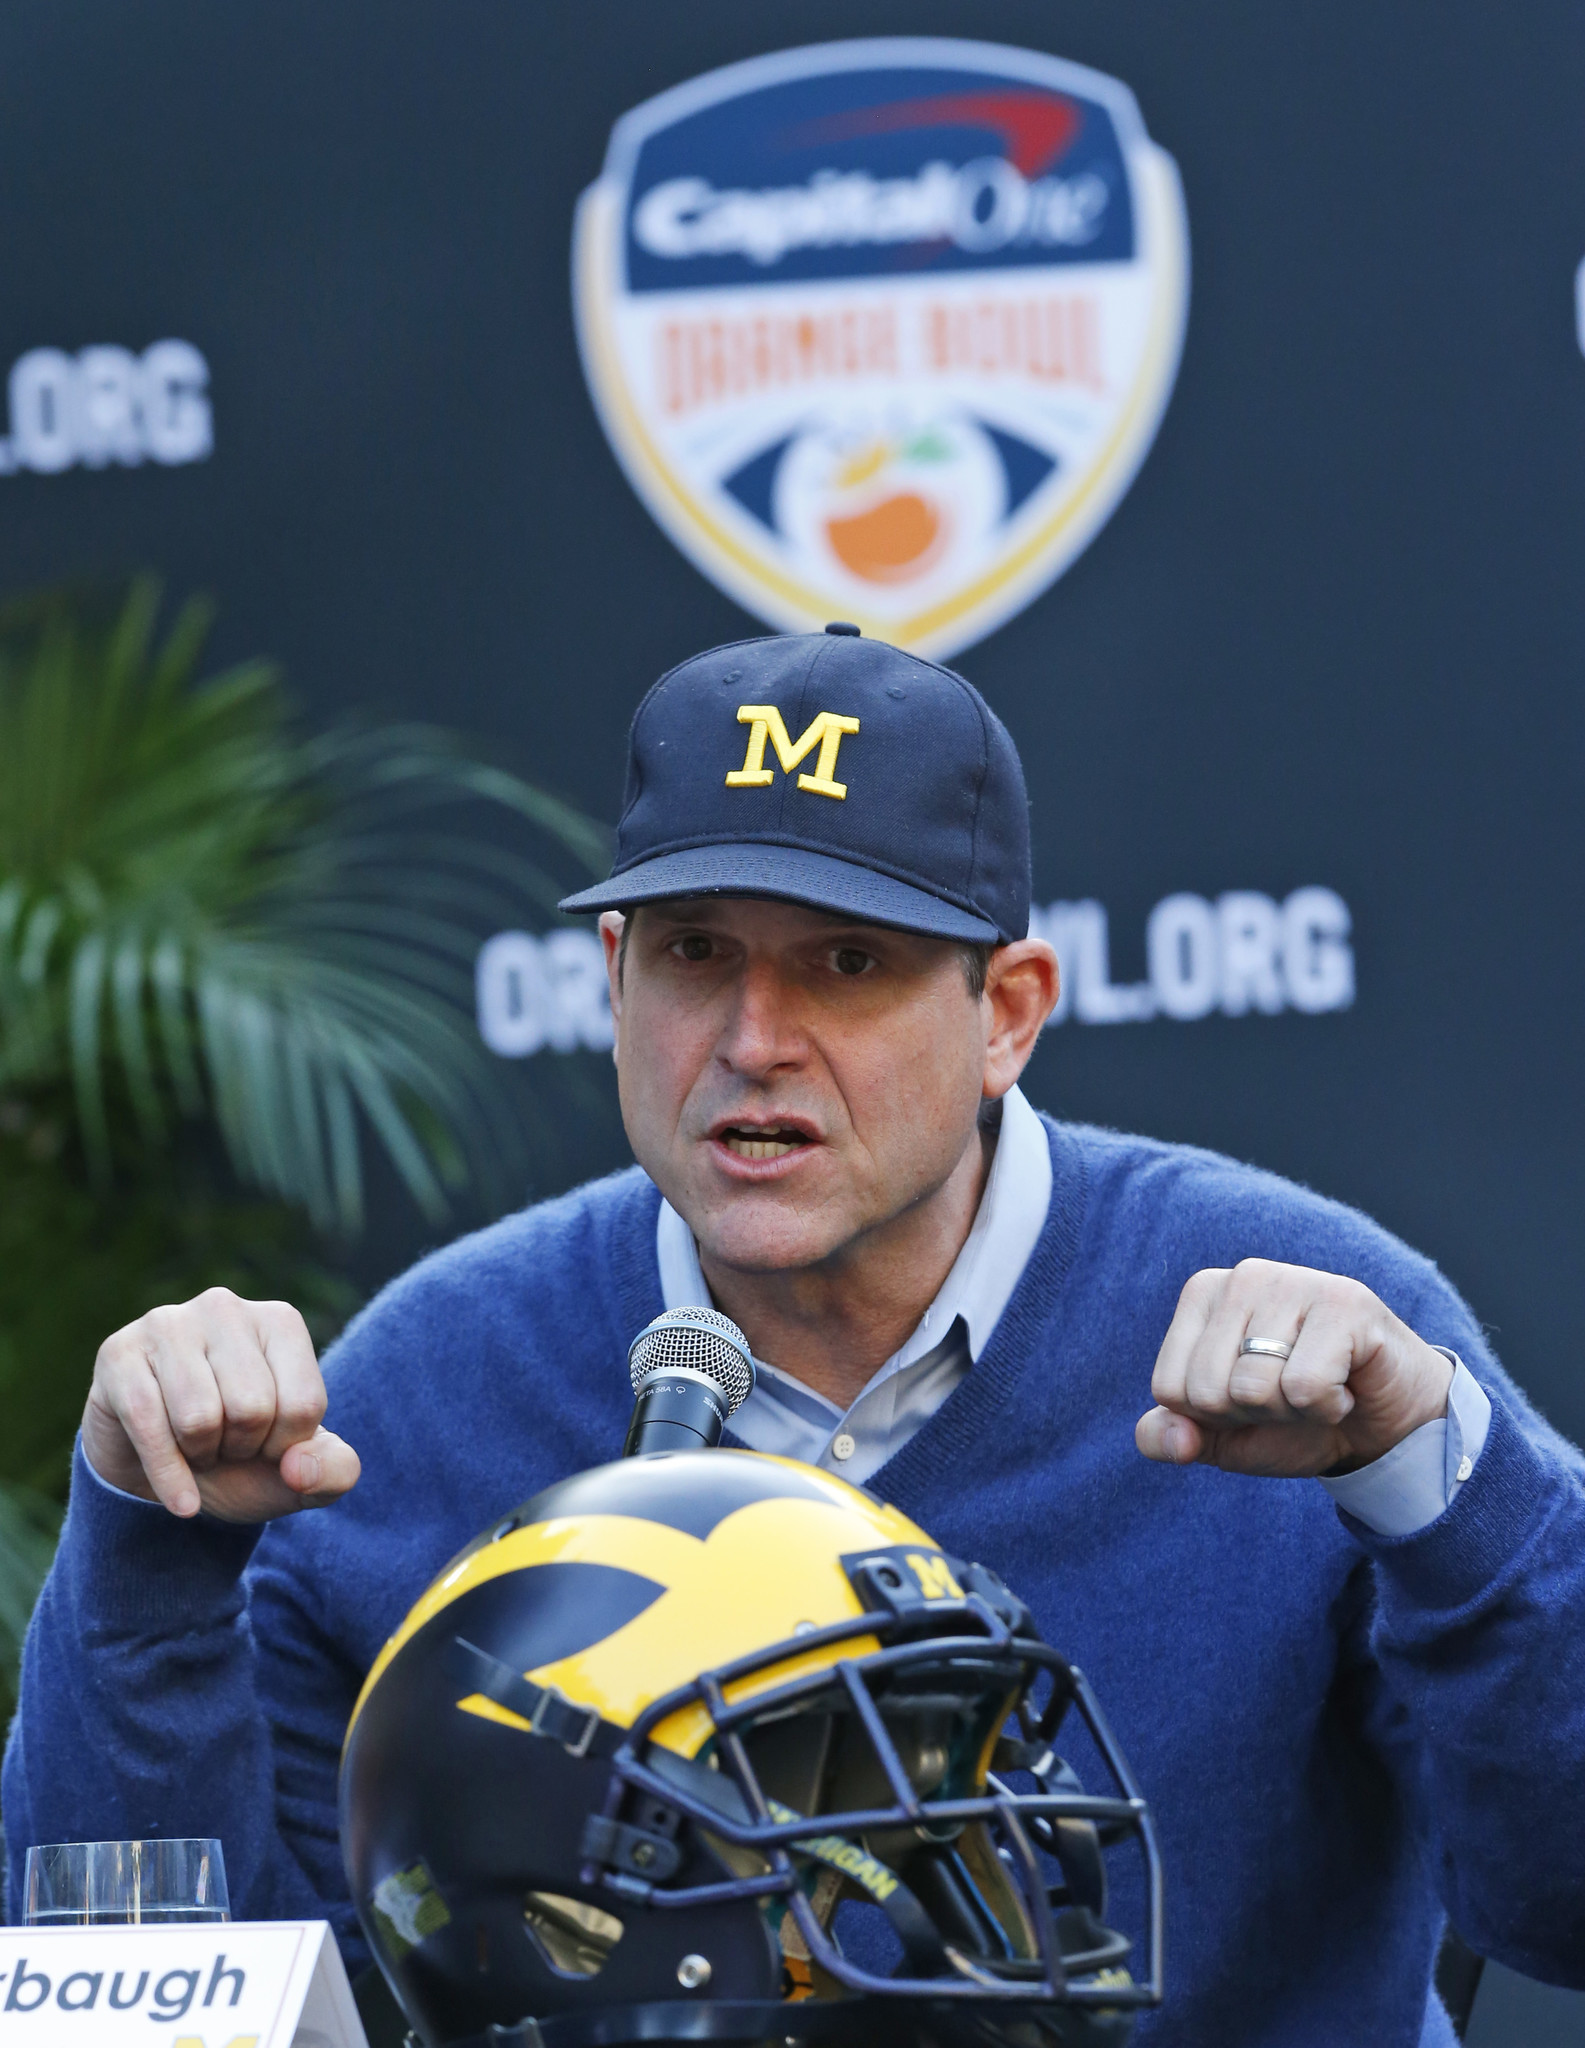 Jim Harbaugh Nfl Rumors Are Lies Made Up By Our Enemies Who Are Jive Turkeys Chicago Tribune